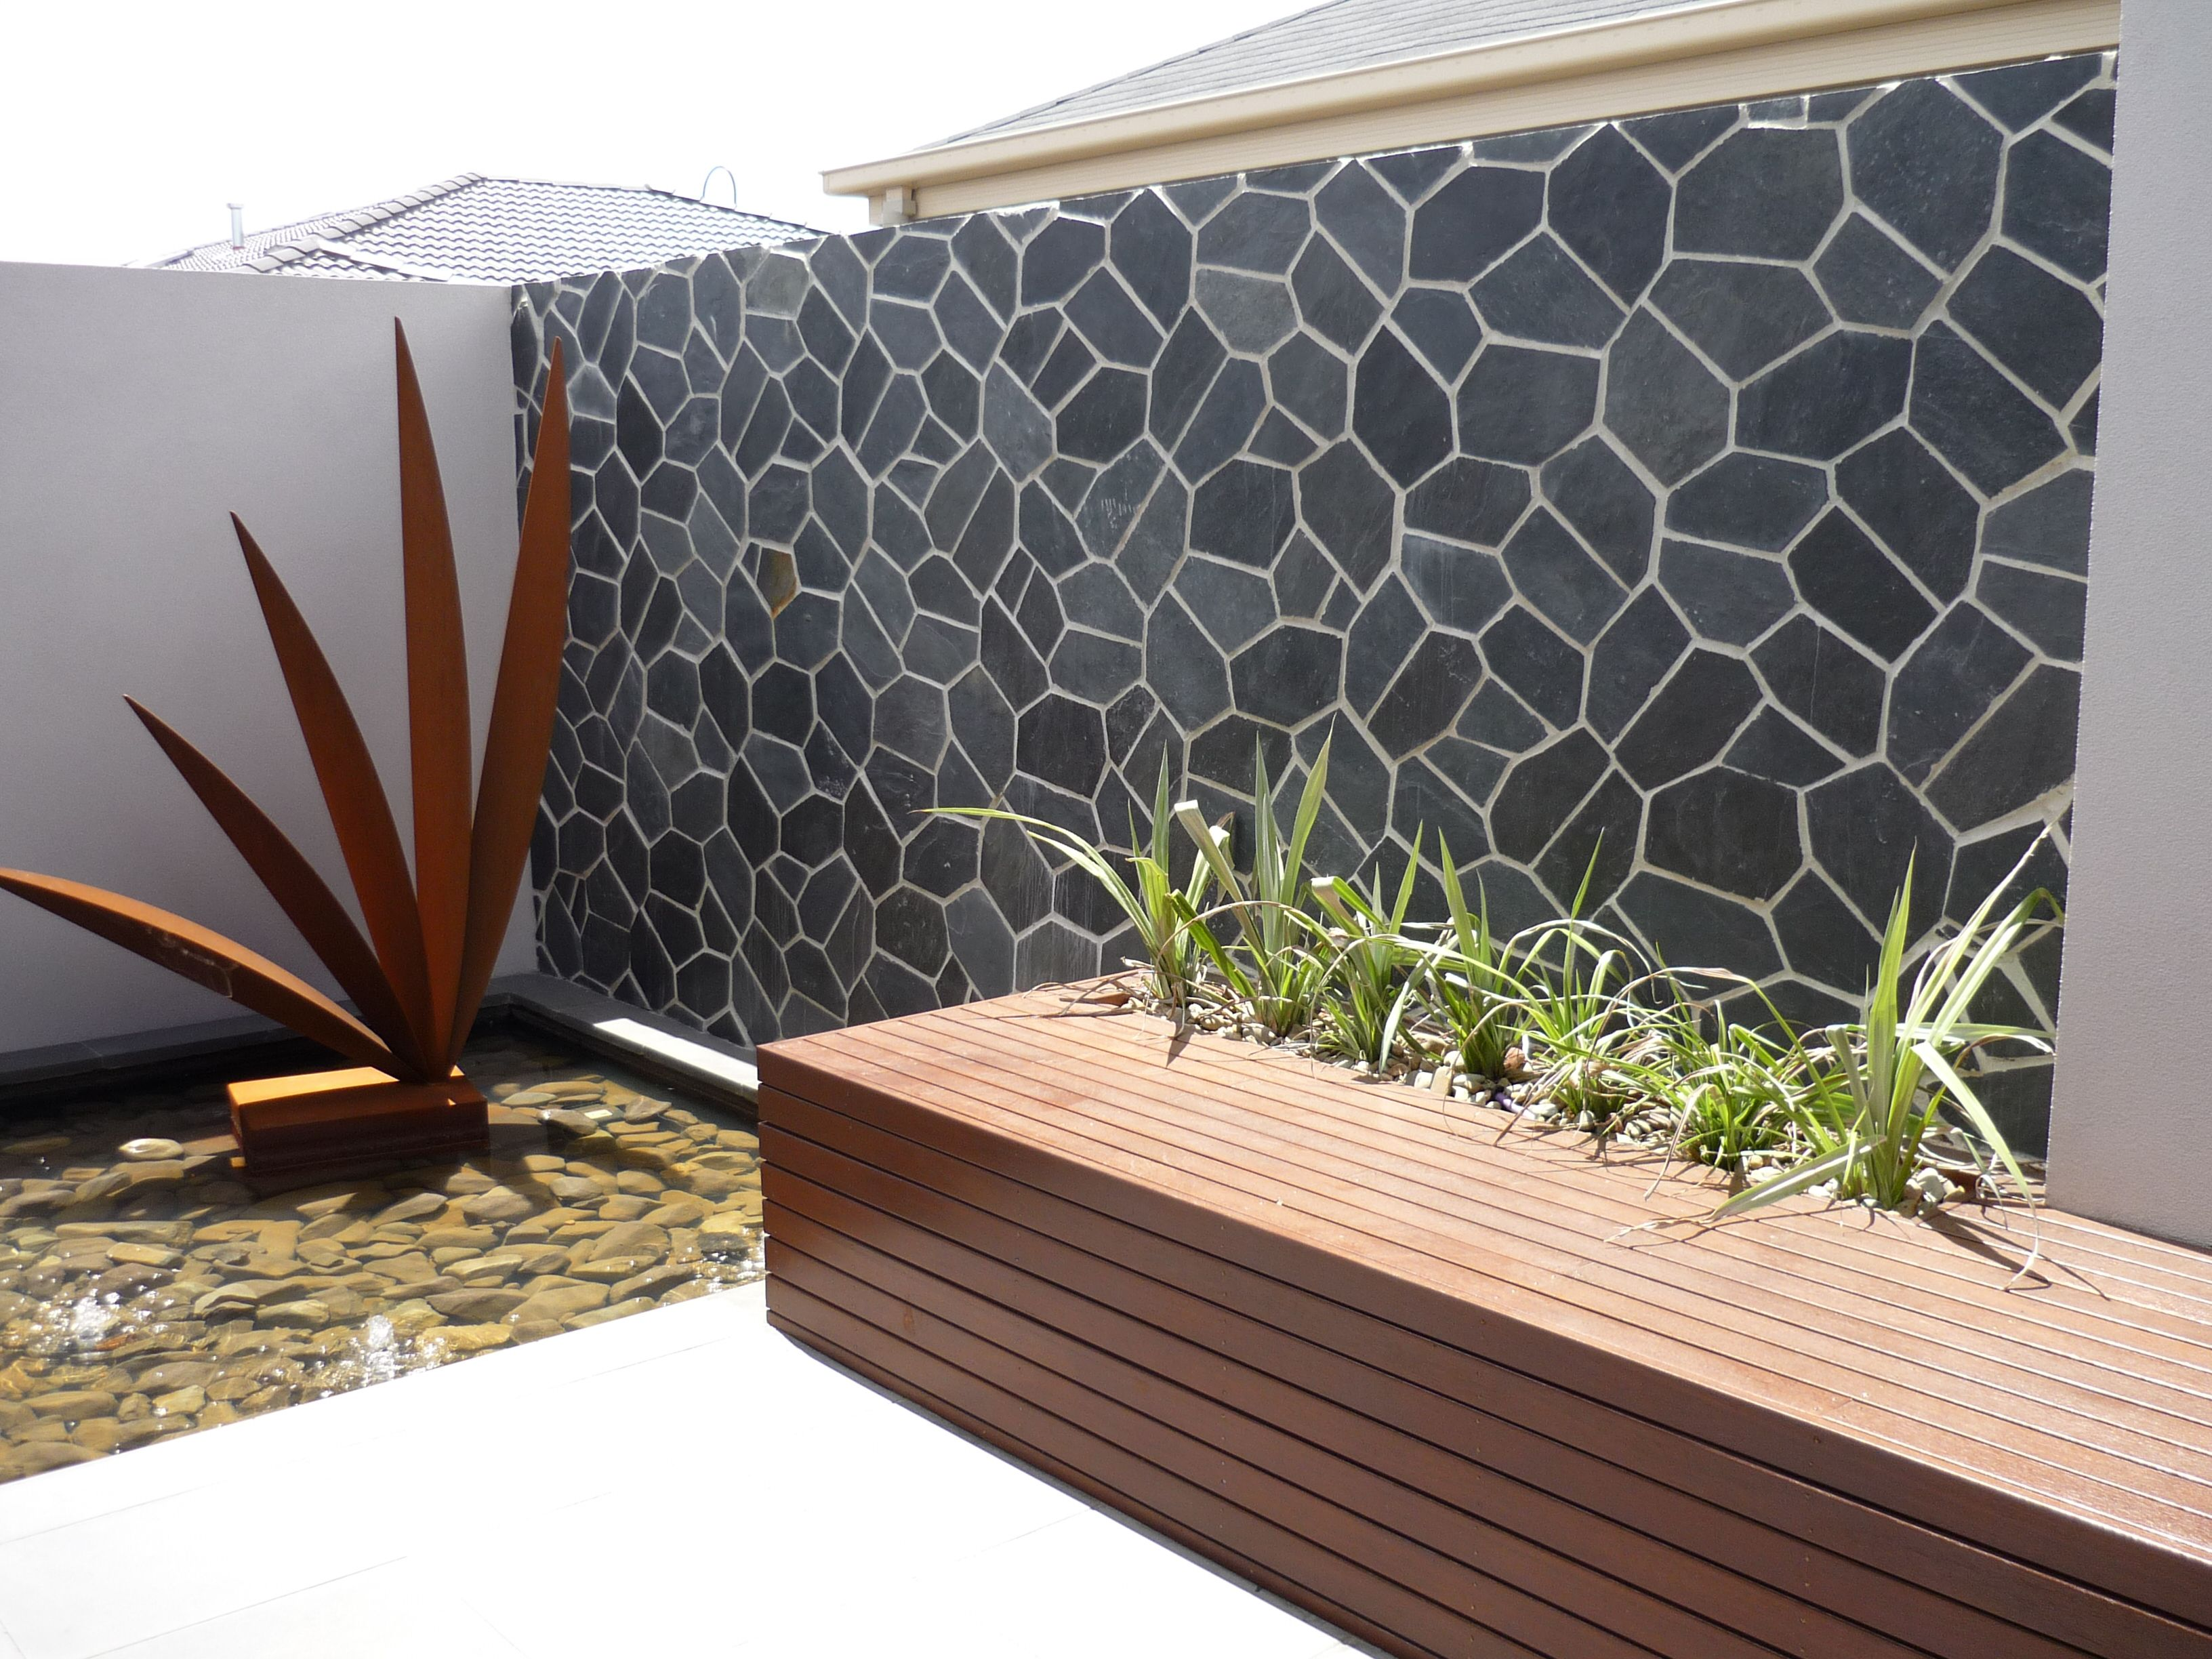 Backyard Feature Wall Ideas an outdoor feature wall in onyx. really stands out #backyard #garden